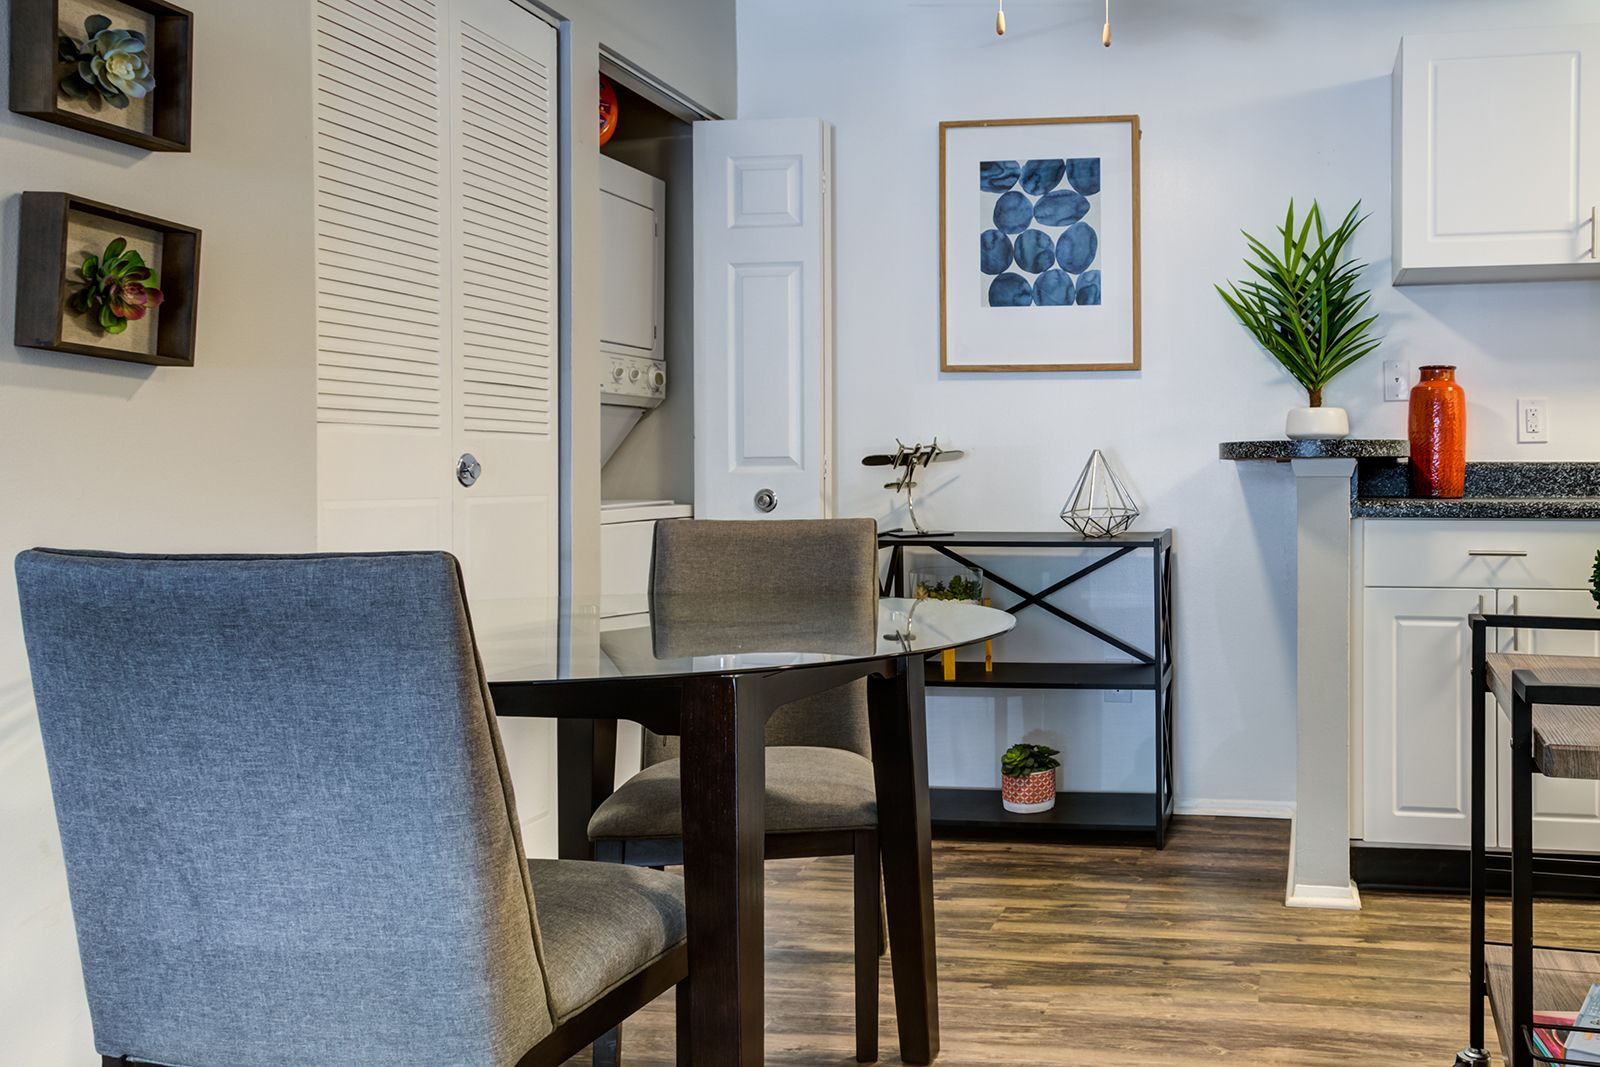 We Offer Pet Friendly 1 And 2 Bedroom Apartment Homes With Spacious Closets Cabinets Private Storage Areas In 2020 Spacious Closets Pet Friendly Apartments Apartment